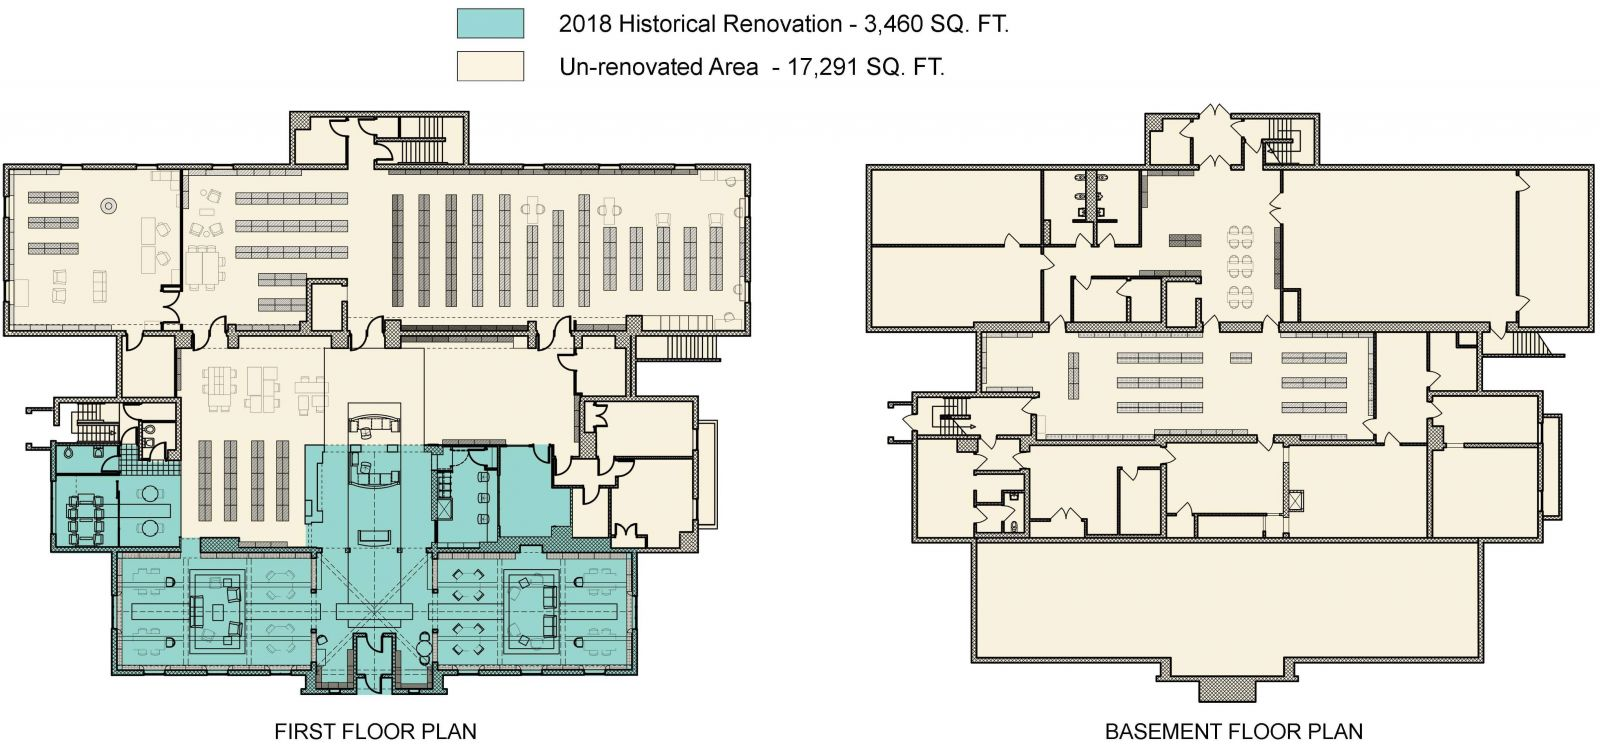 Library's current floor plan